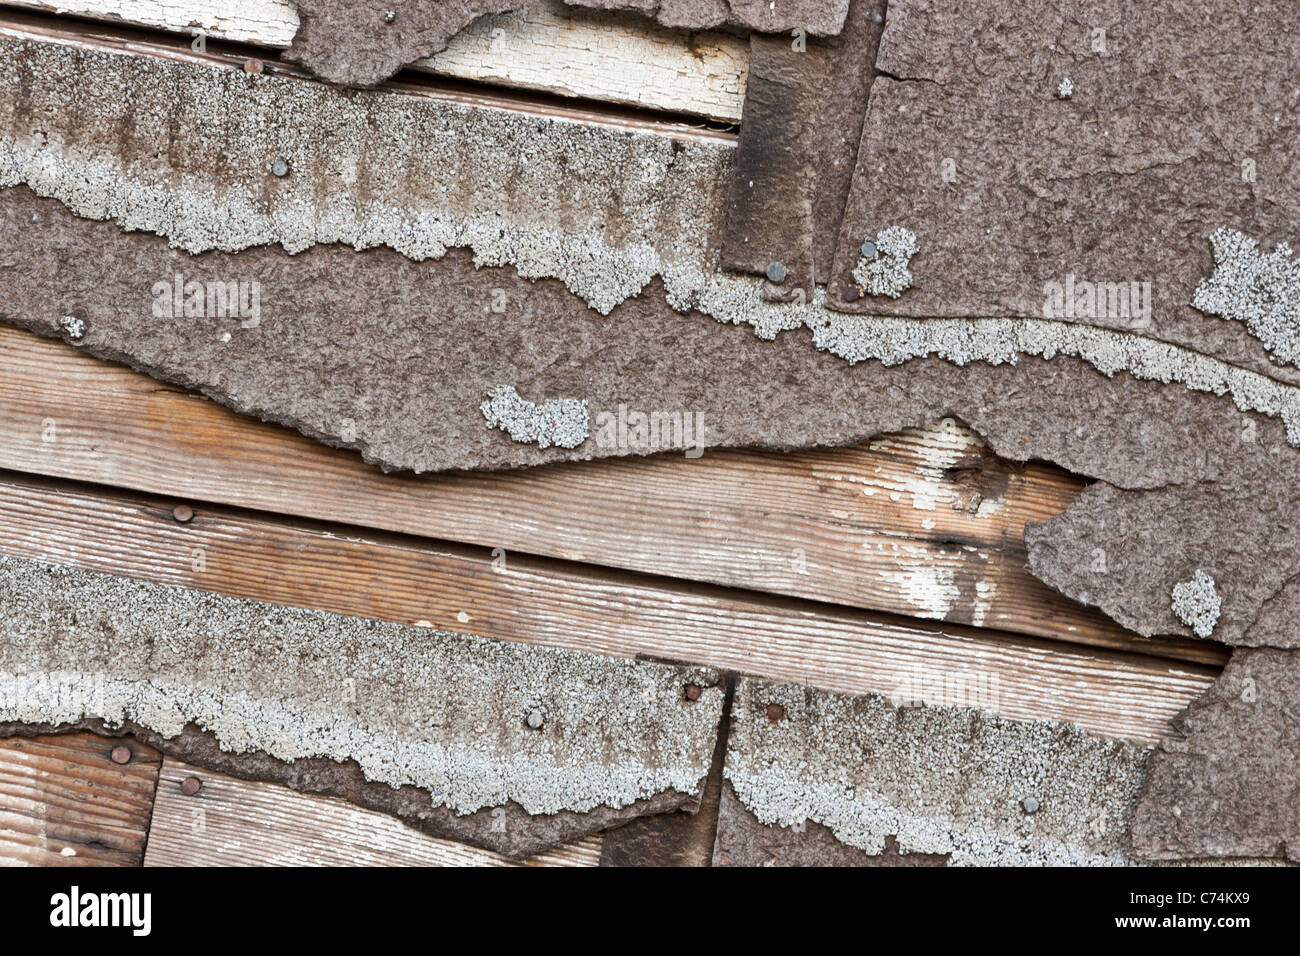 Asbestos Composition Asphalt Shingles Deteriorating Stock Photo Royalty Free Image 38826769